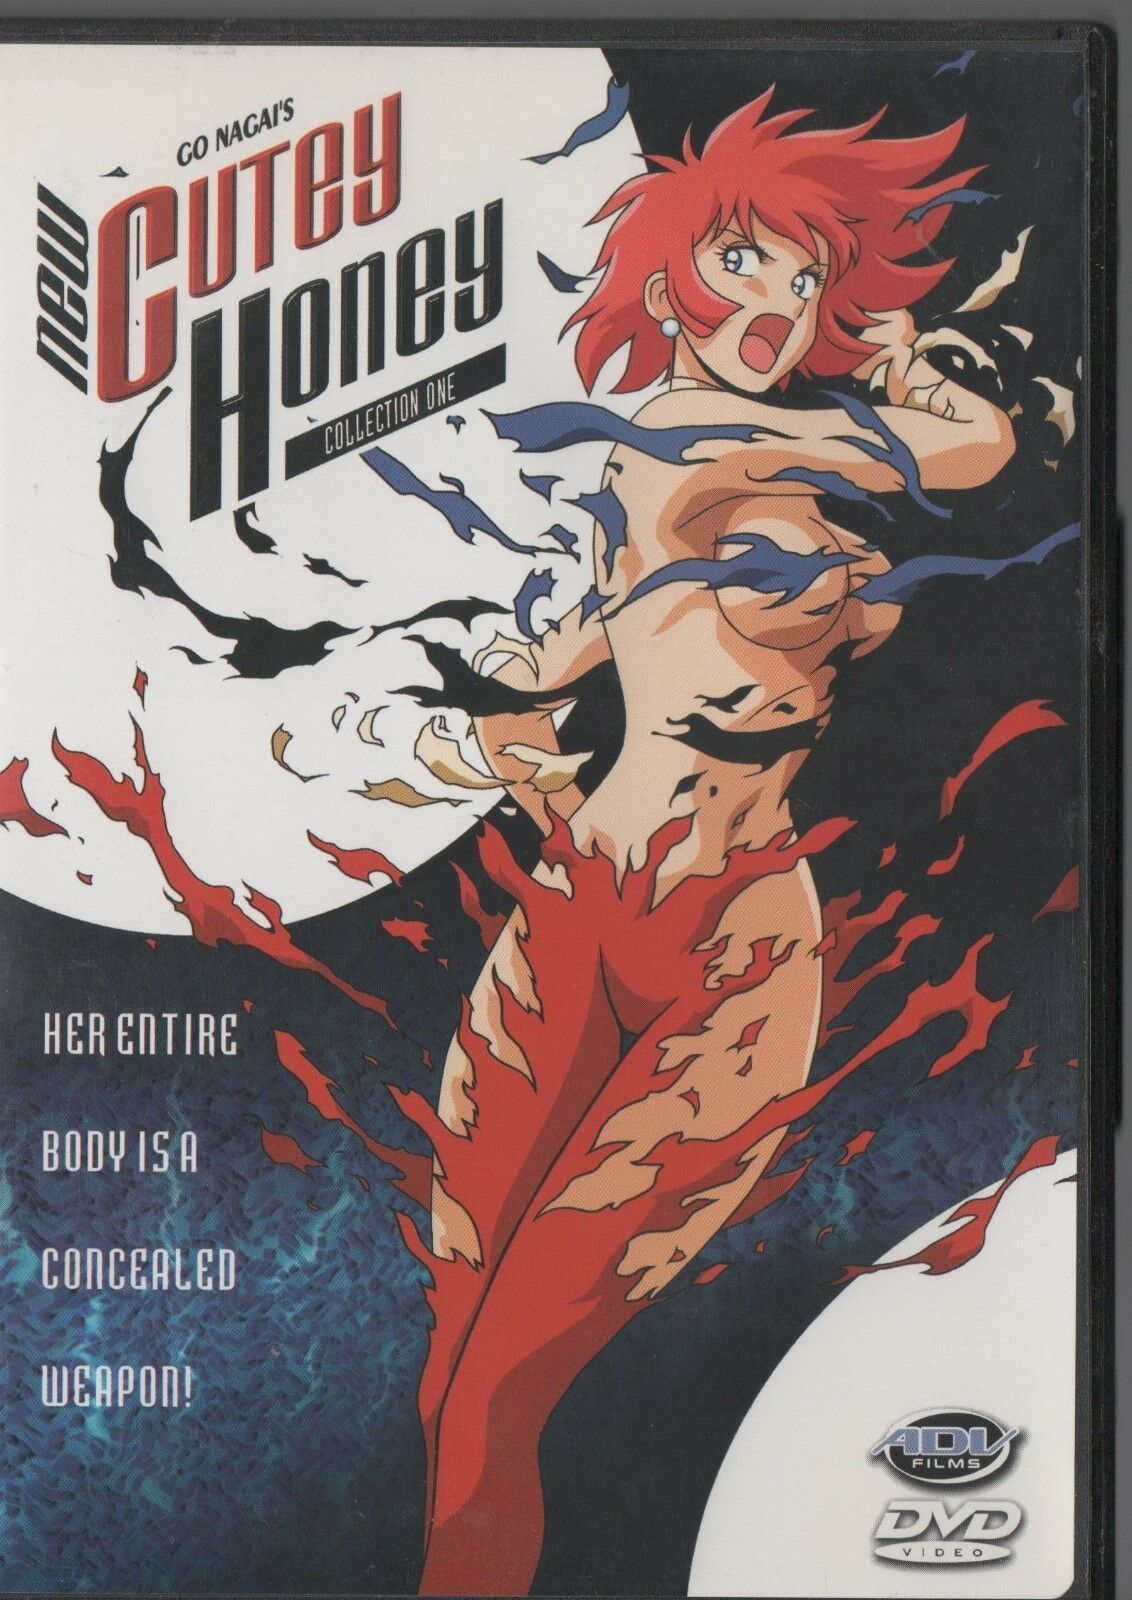 New Cutey Honey Collection One - Co Nagai - ADV Films - DVD DC/001 - R - 2000.